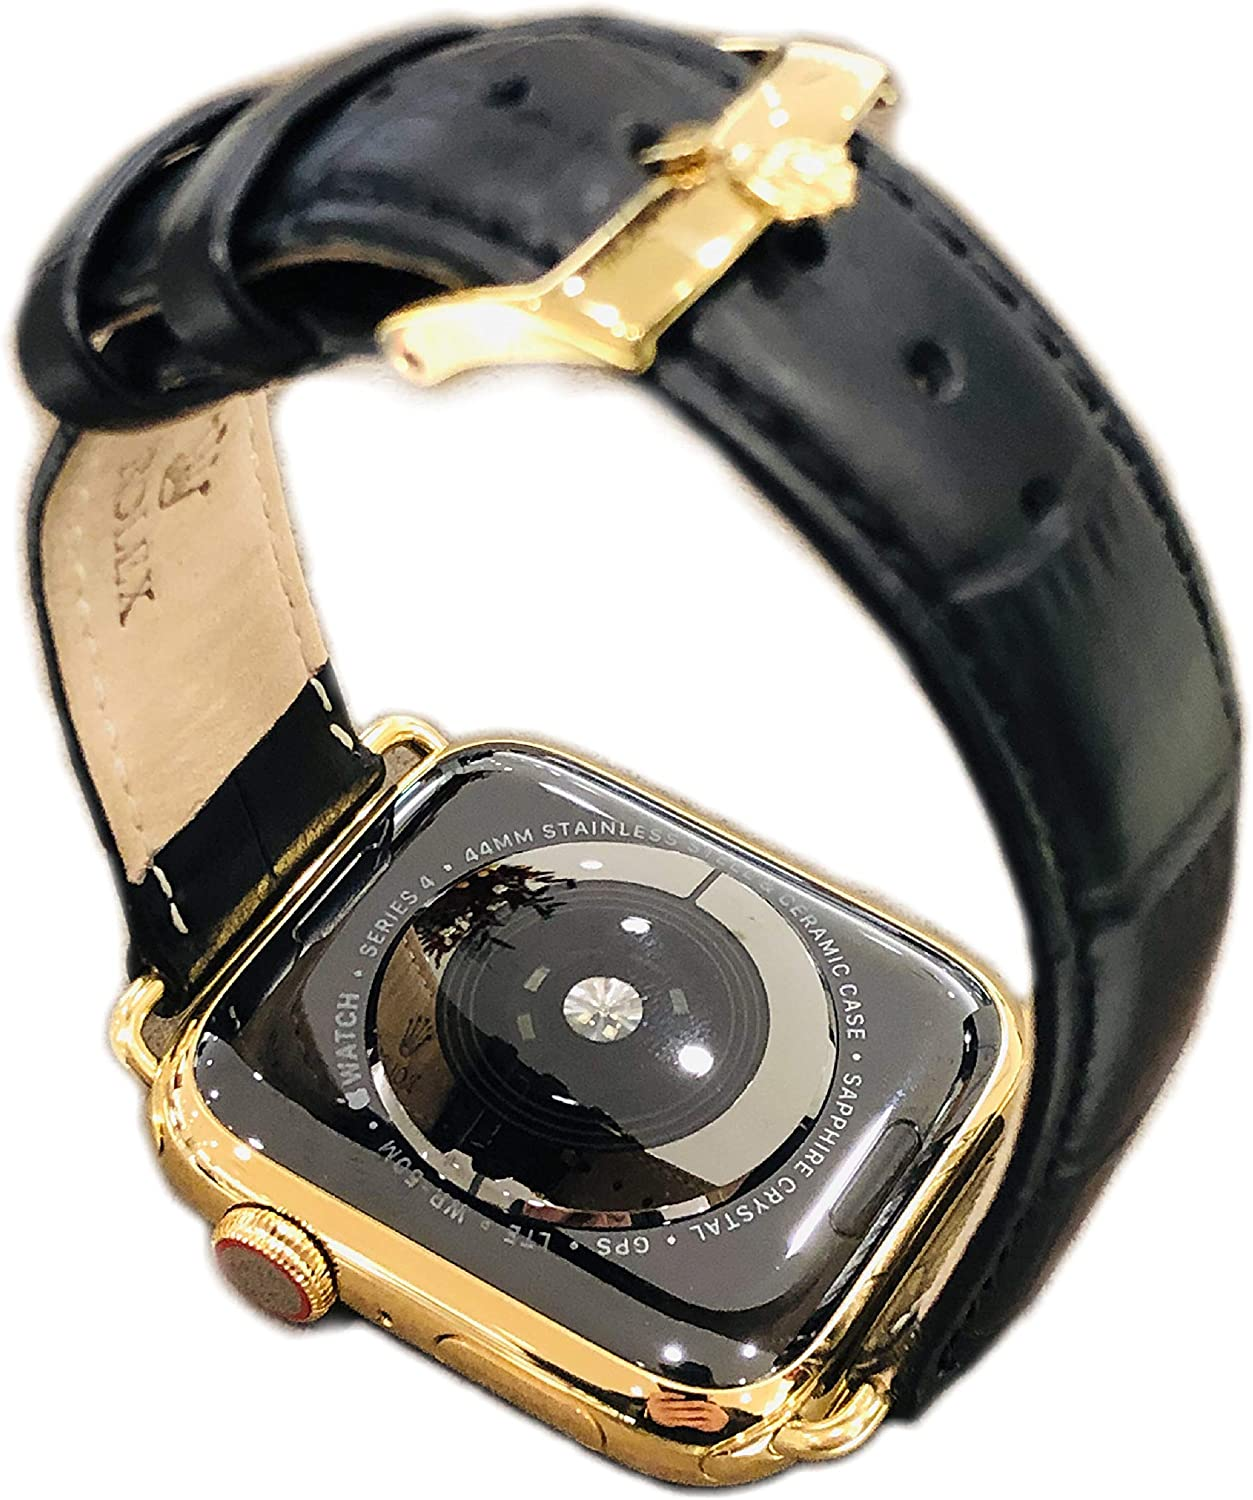 De Billas Lux Custom 24K Gold Plated 44MM iWatch Series 4 with Black Alligator Leather Rolex Buckle Band LTE+GPS US Version